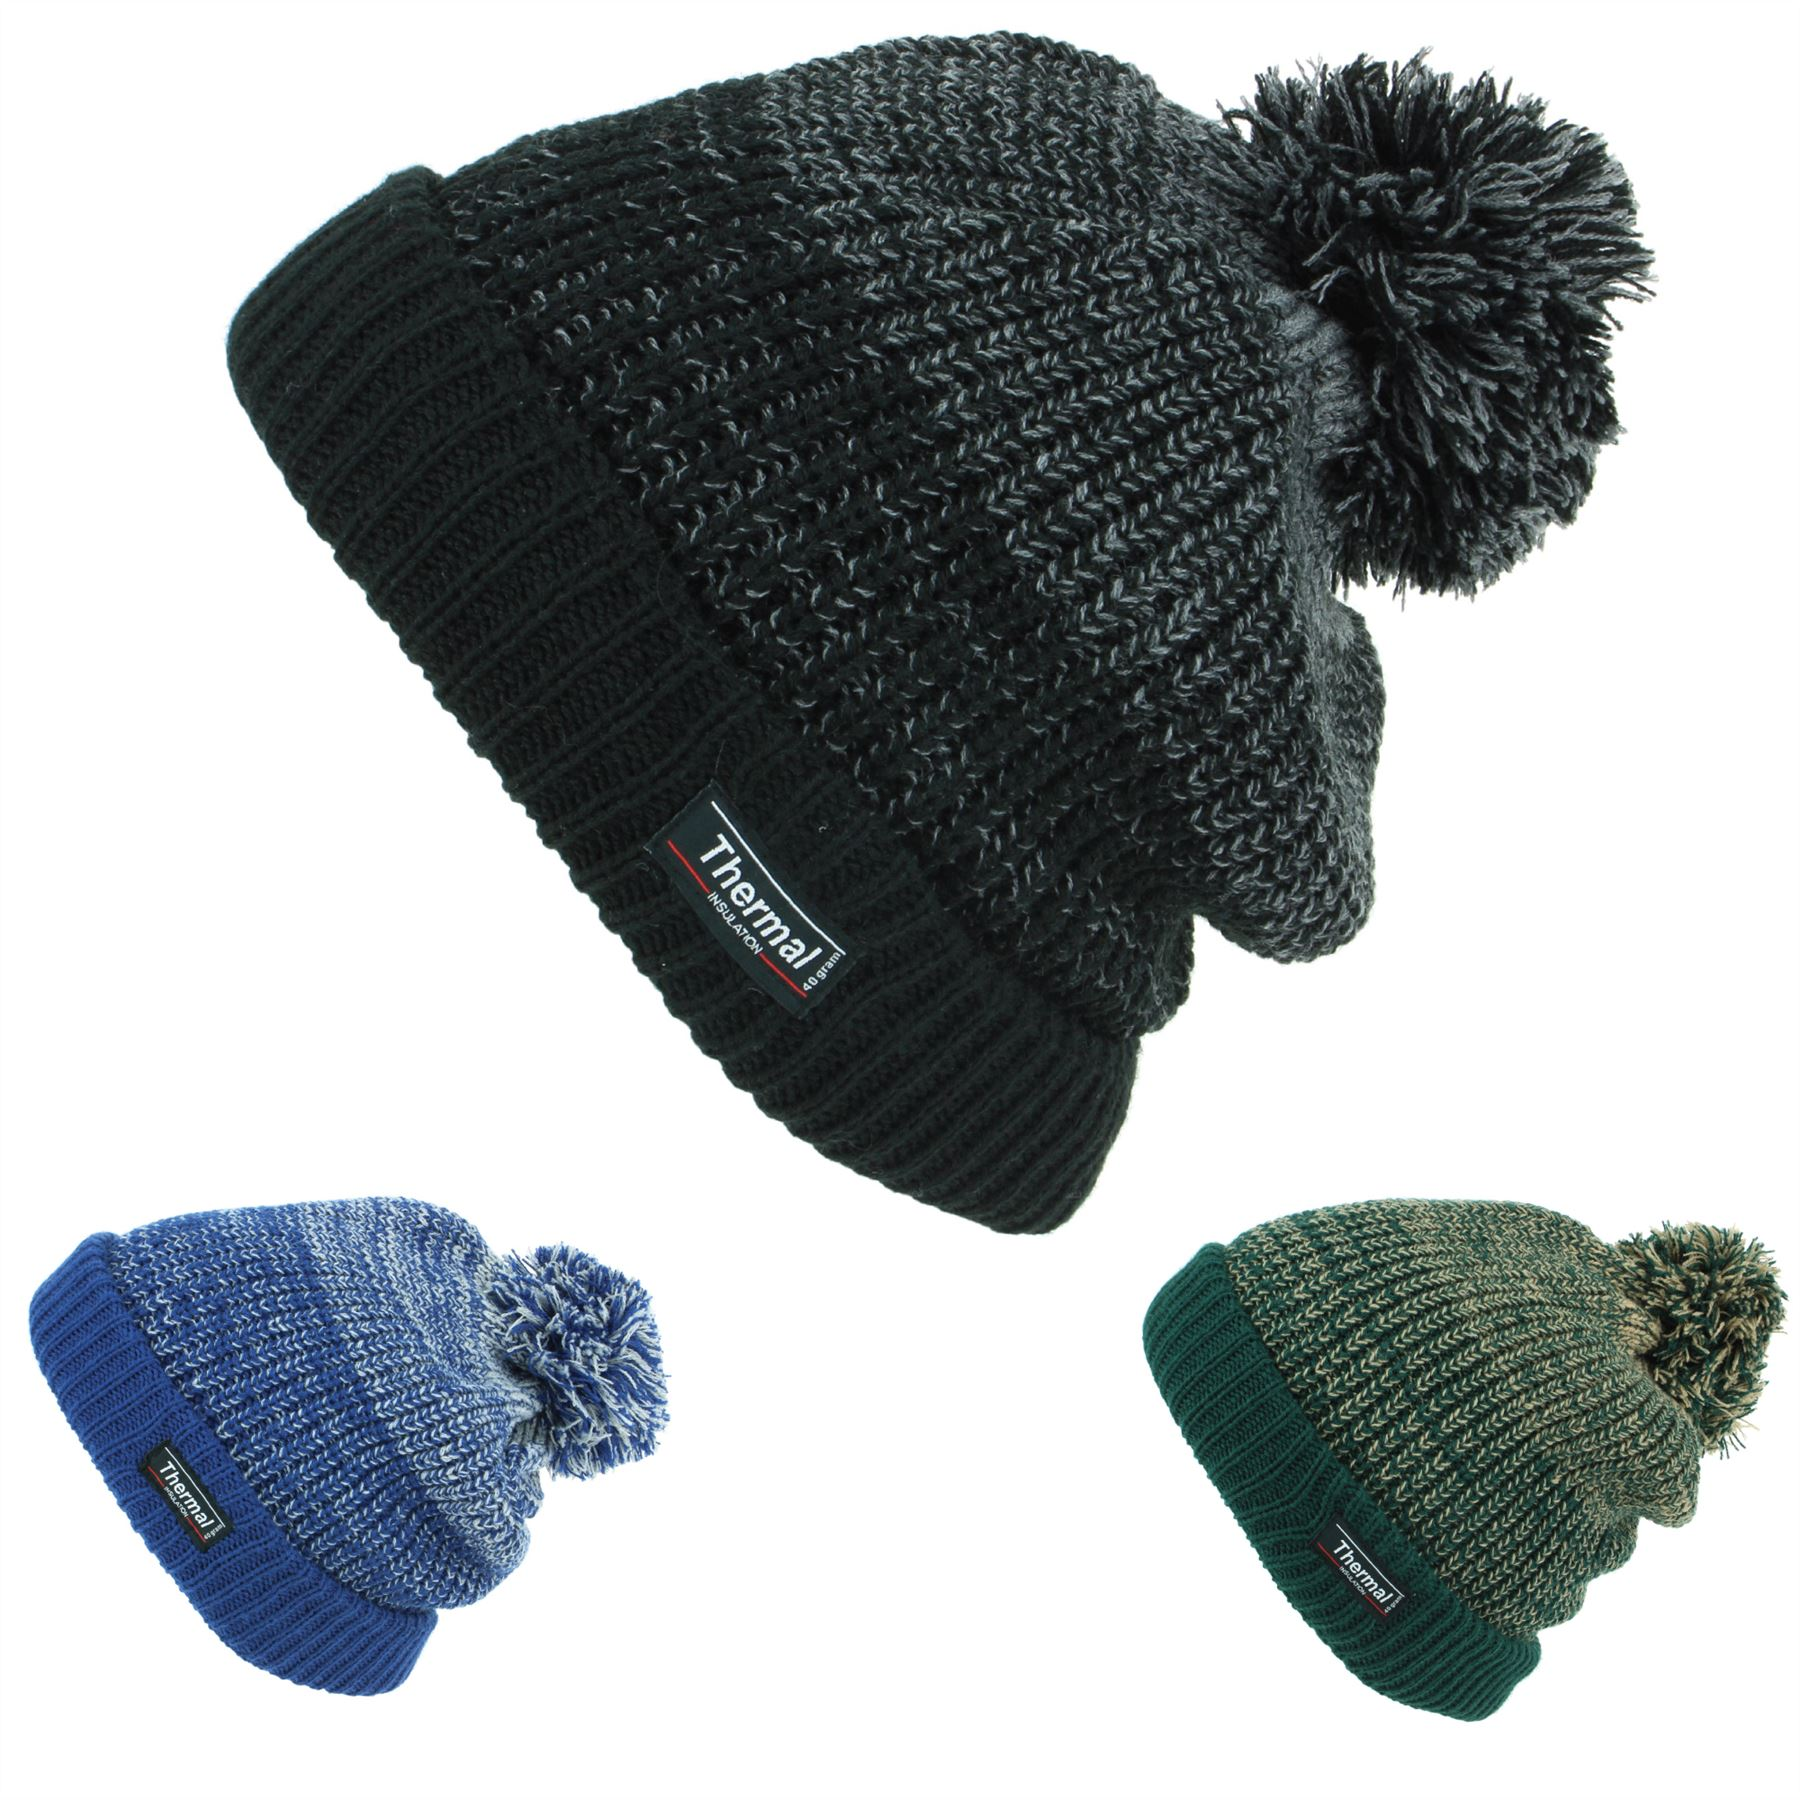 bb0db1b7c Details about Beanie Hat Cap Warm Winter BLUE GREEN Bobble Thinsulate 3M  Men Ladies Knit Ski